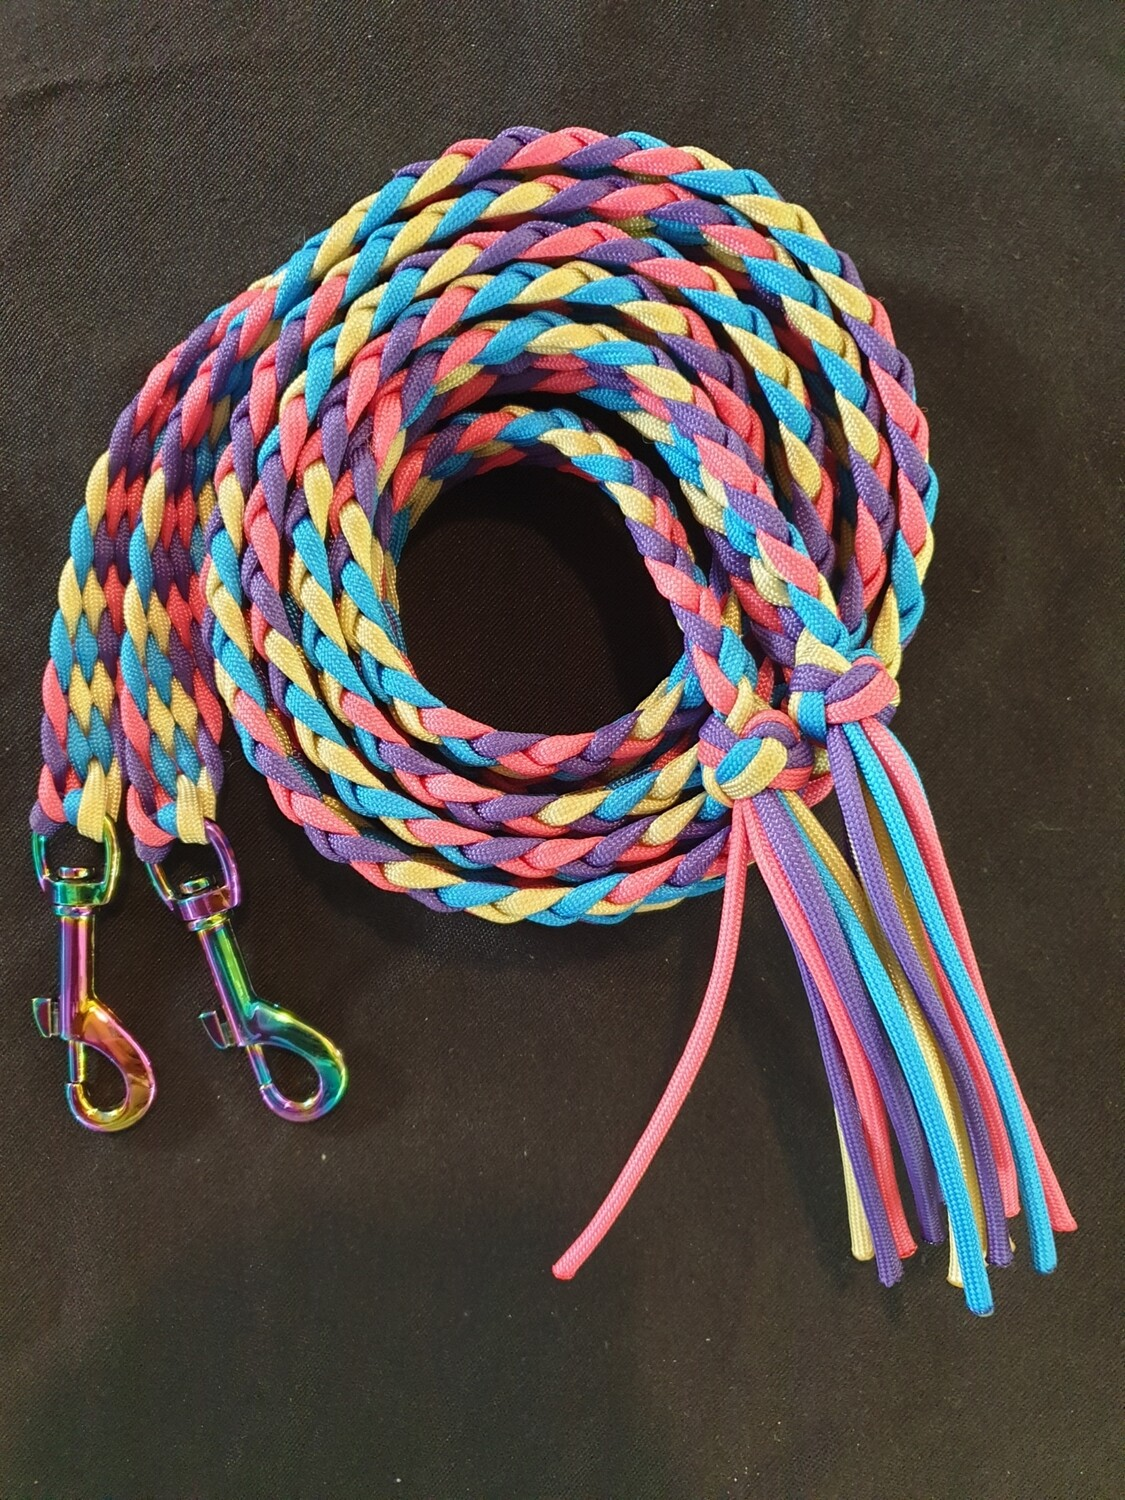 6ft Beige/Purple/Pink/Blue Split Braided Reins